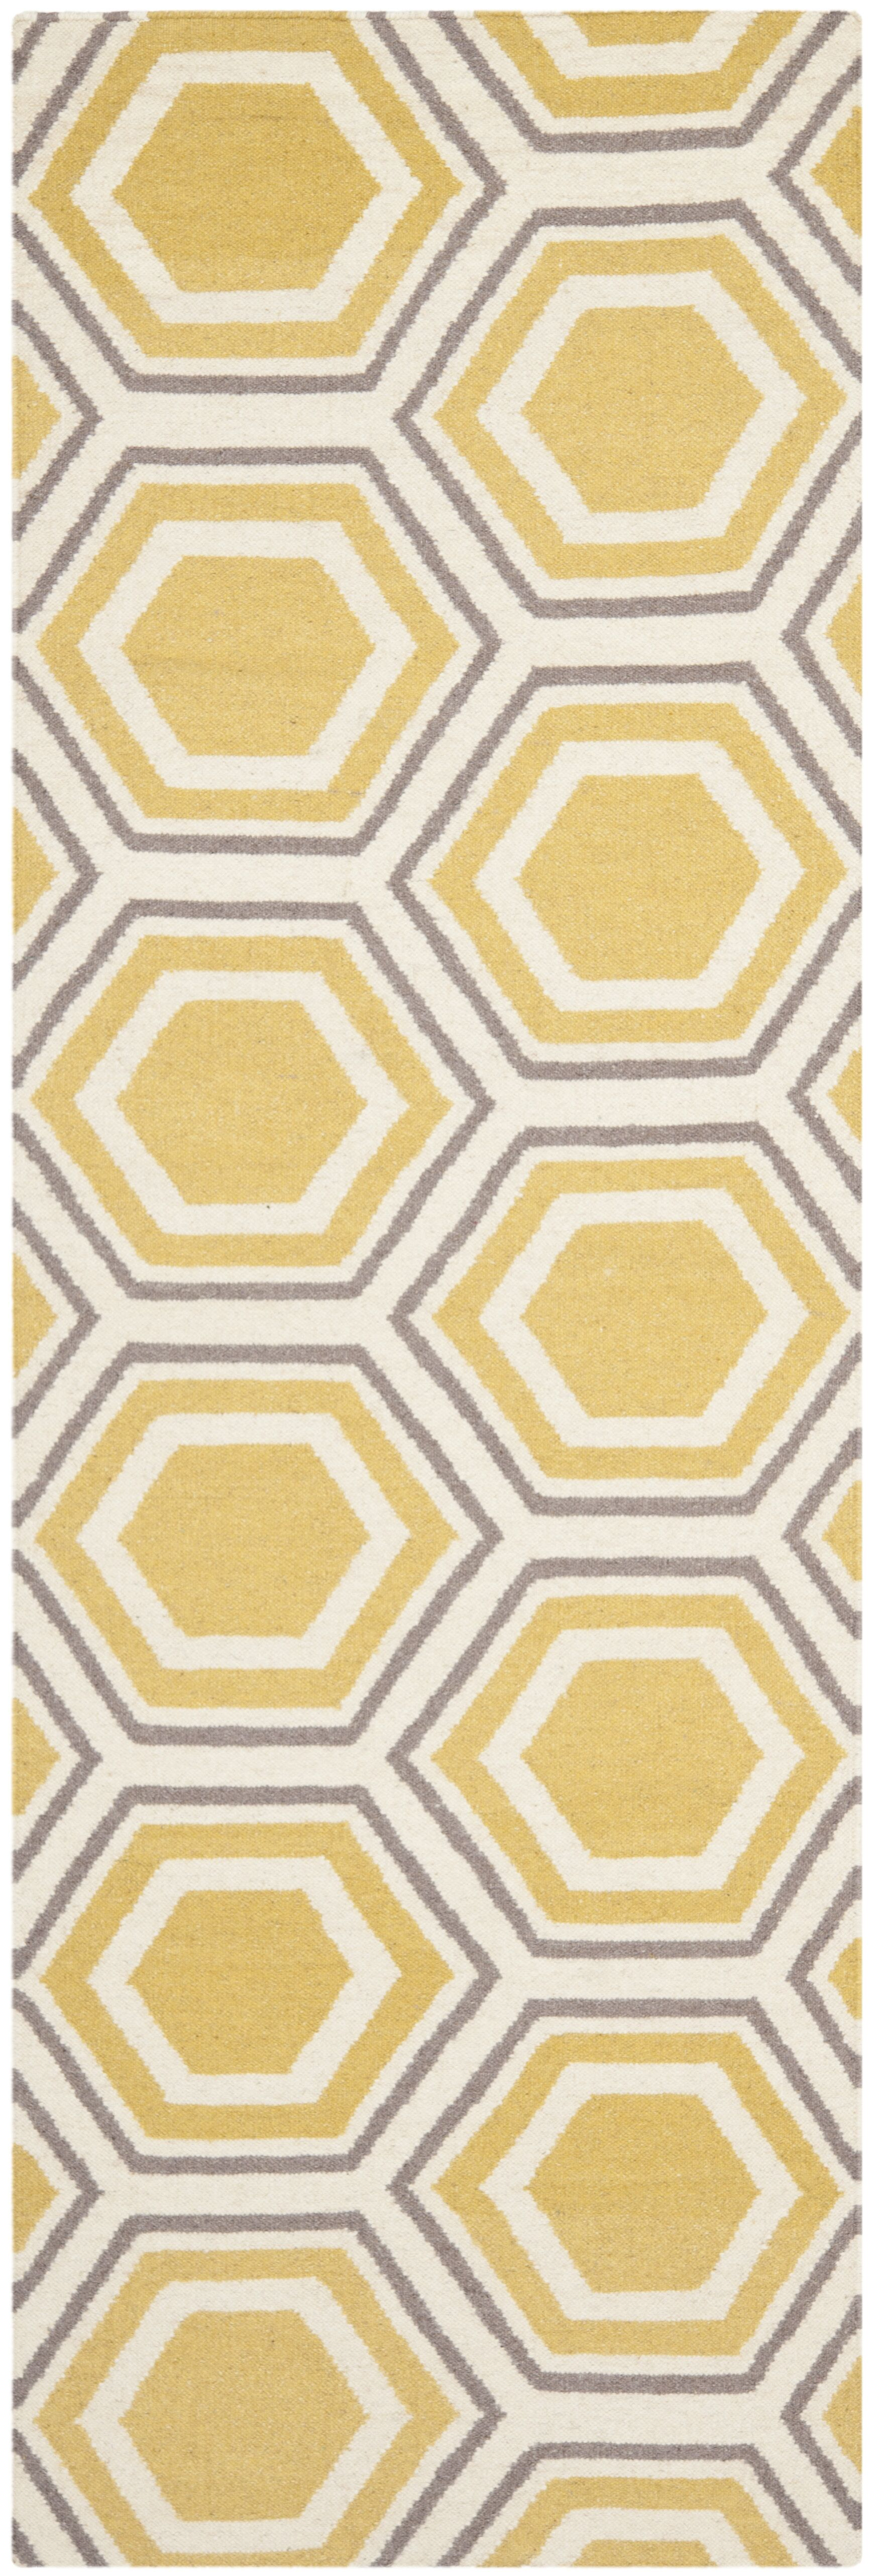 Cassiopeia Hand Woven Ivory/Yellow Area Rug Rug Size: Runner 2'6